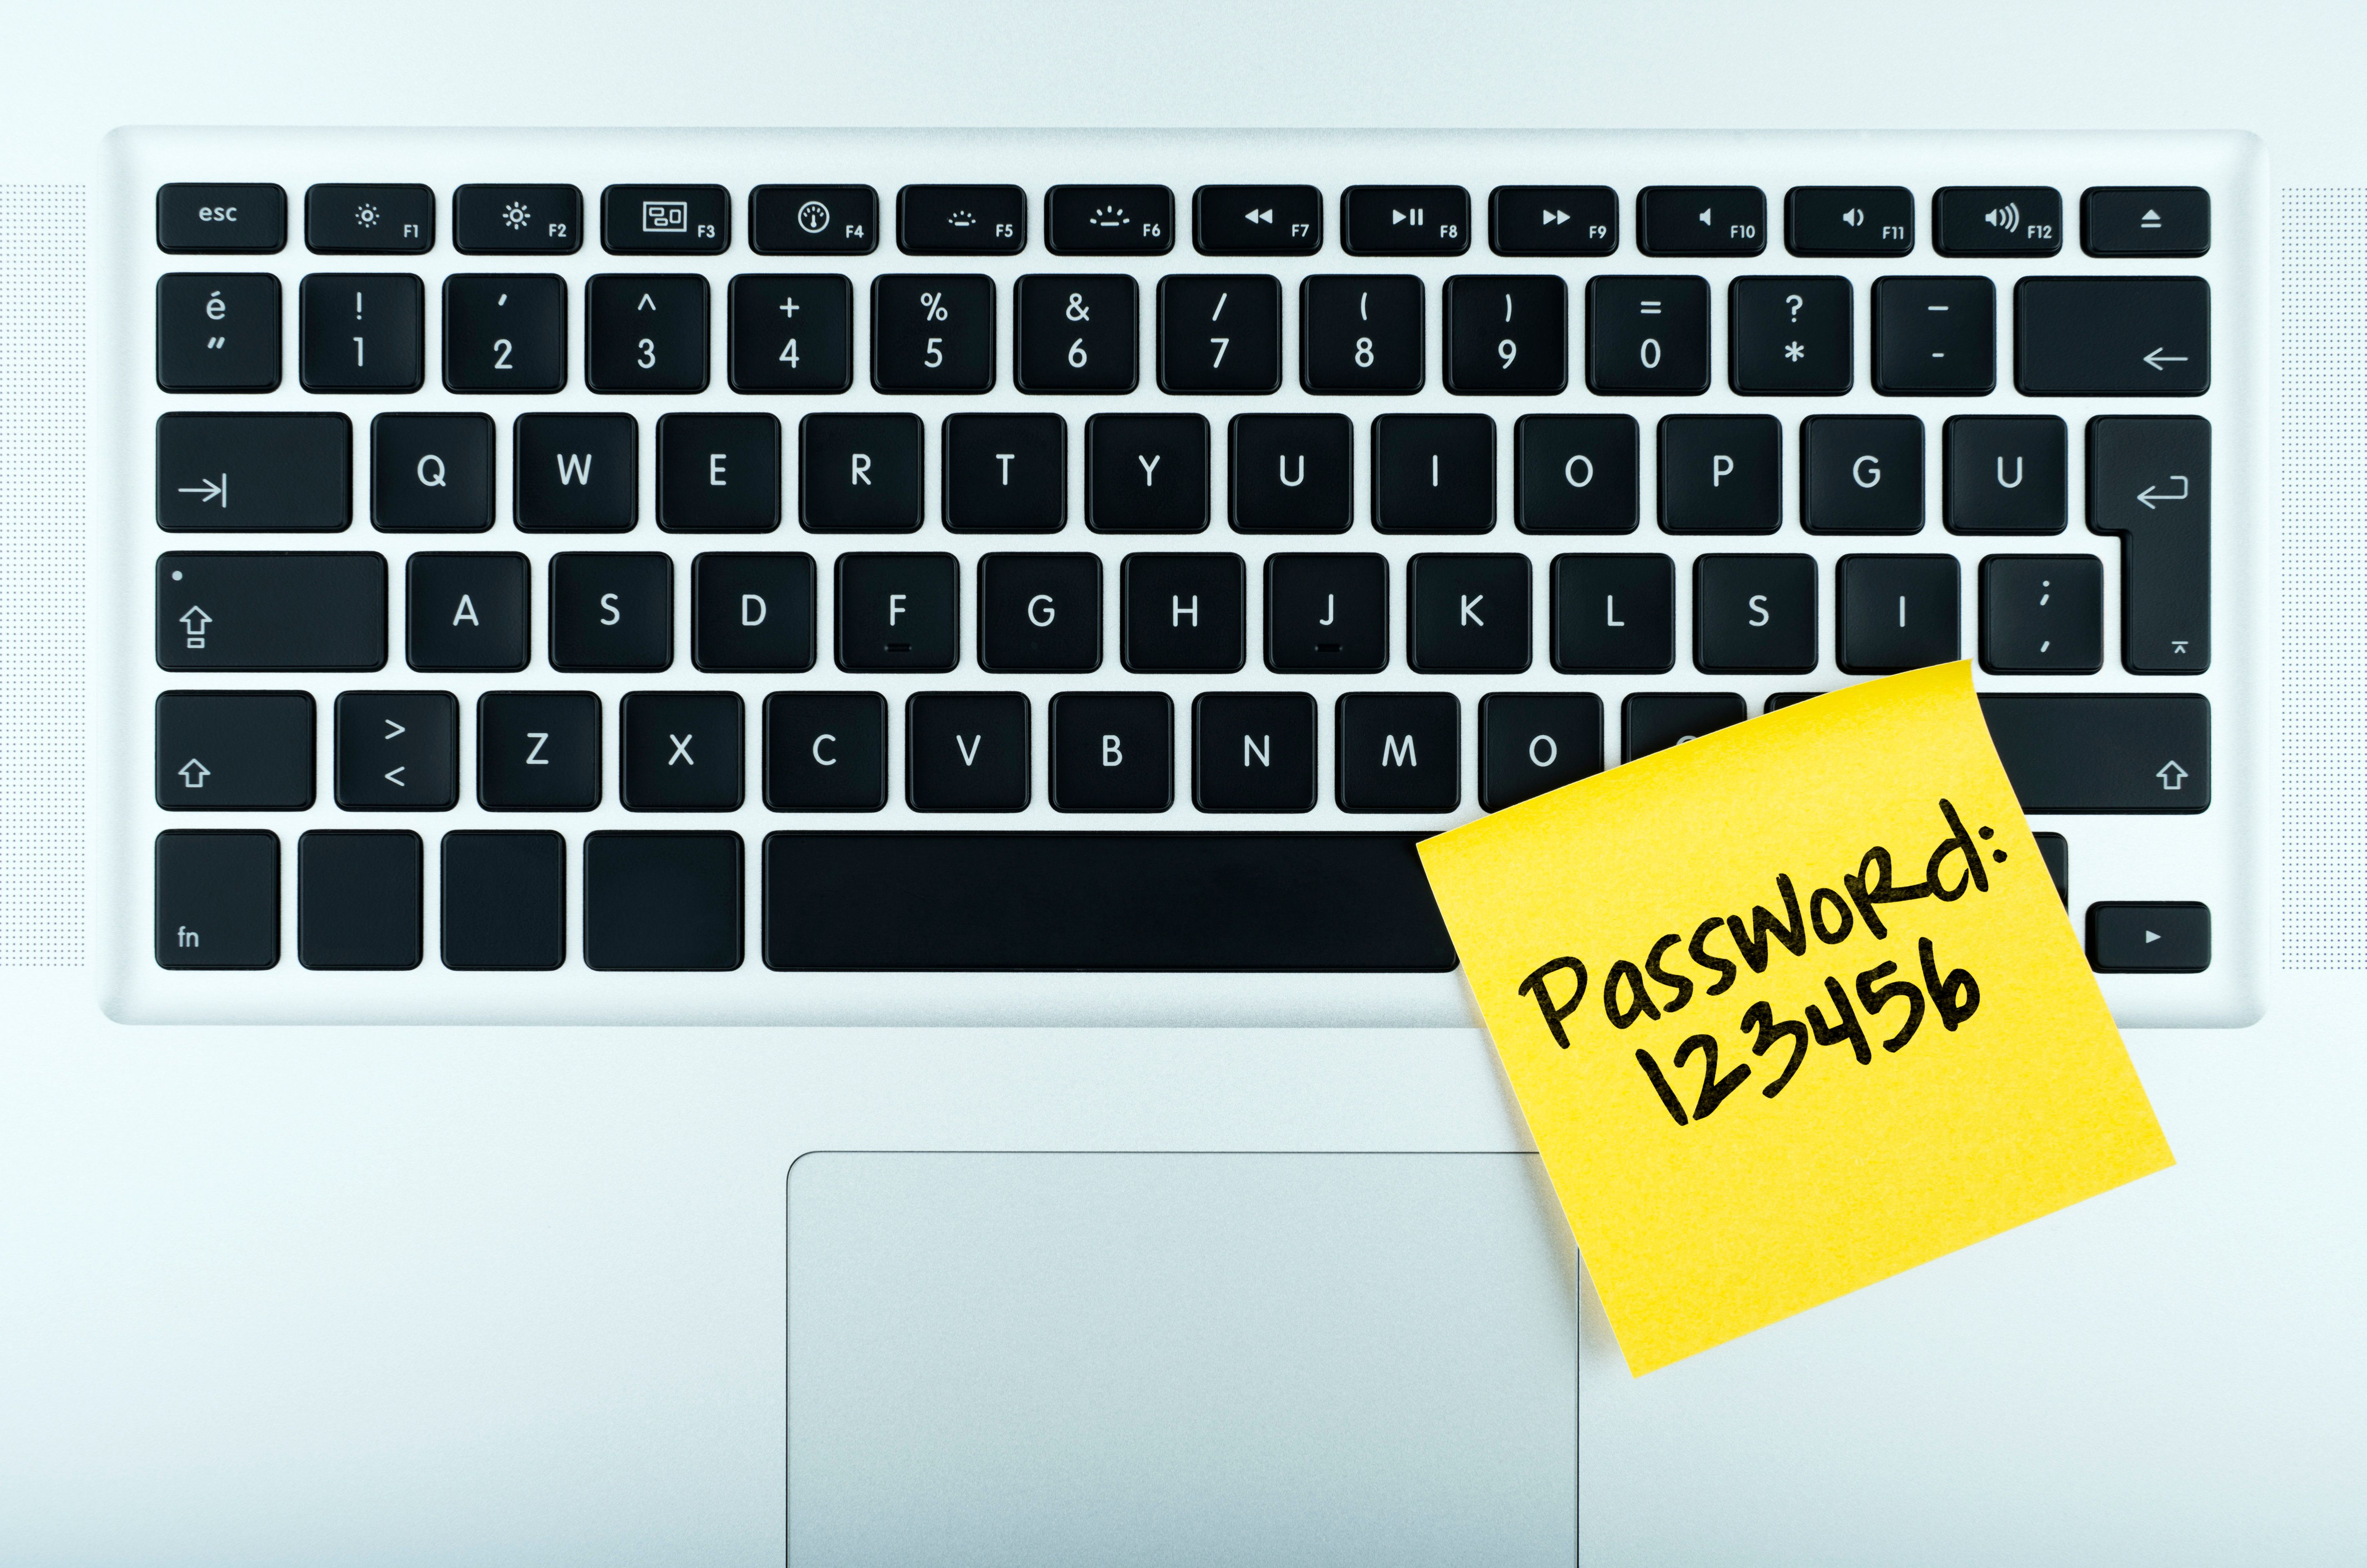 Find Out If Your Password Has Been Hacked Using This